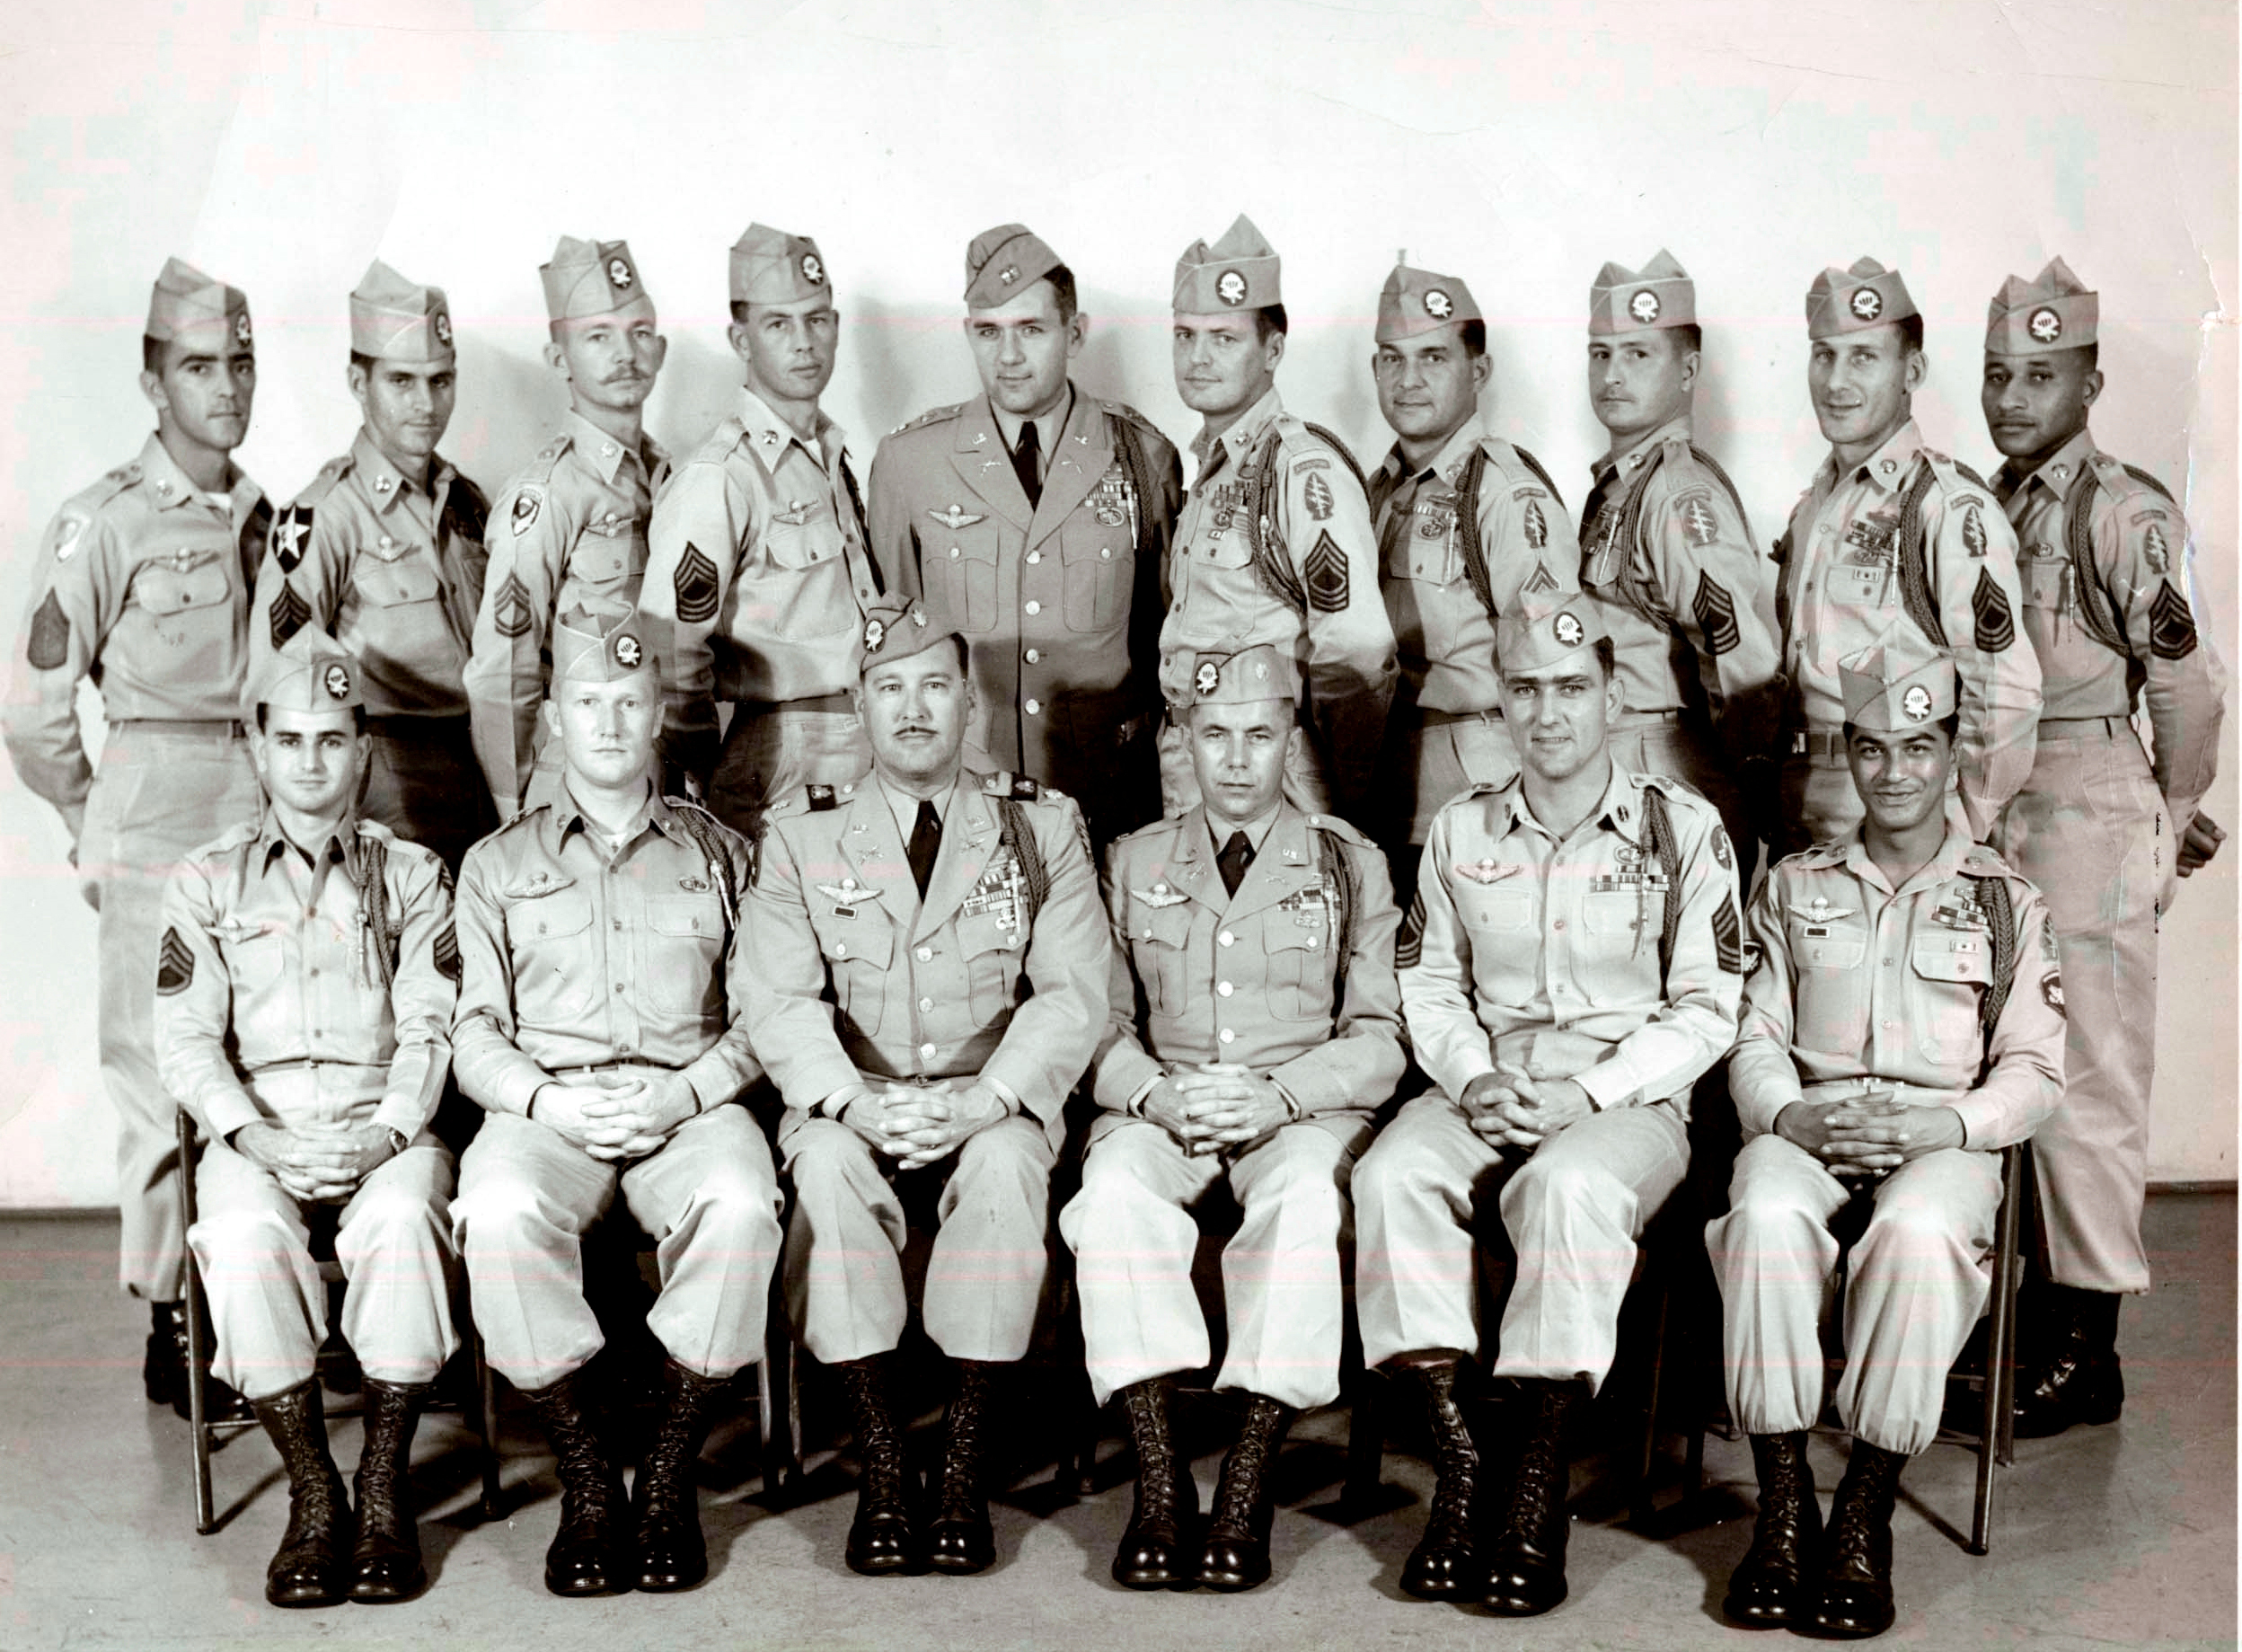 14th SFOD, cadre of 1st SFGA, January 1957 at Fort Shafter